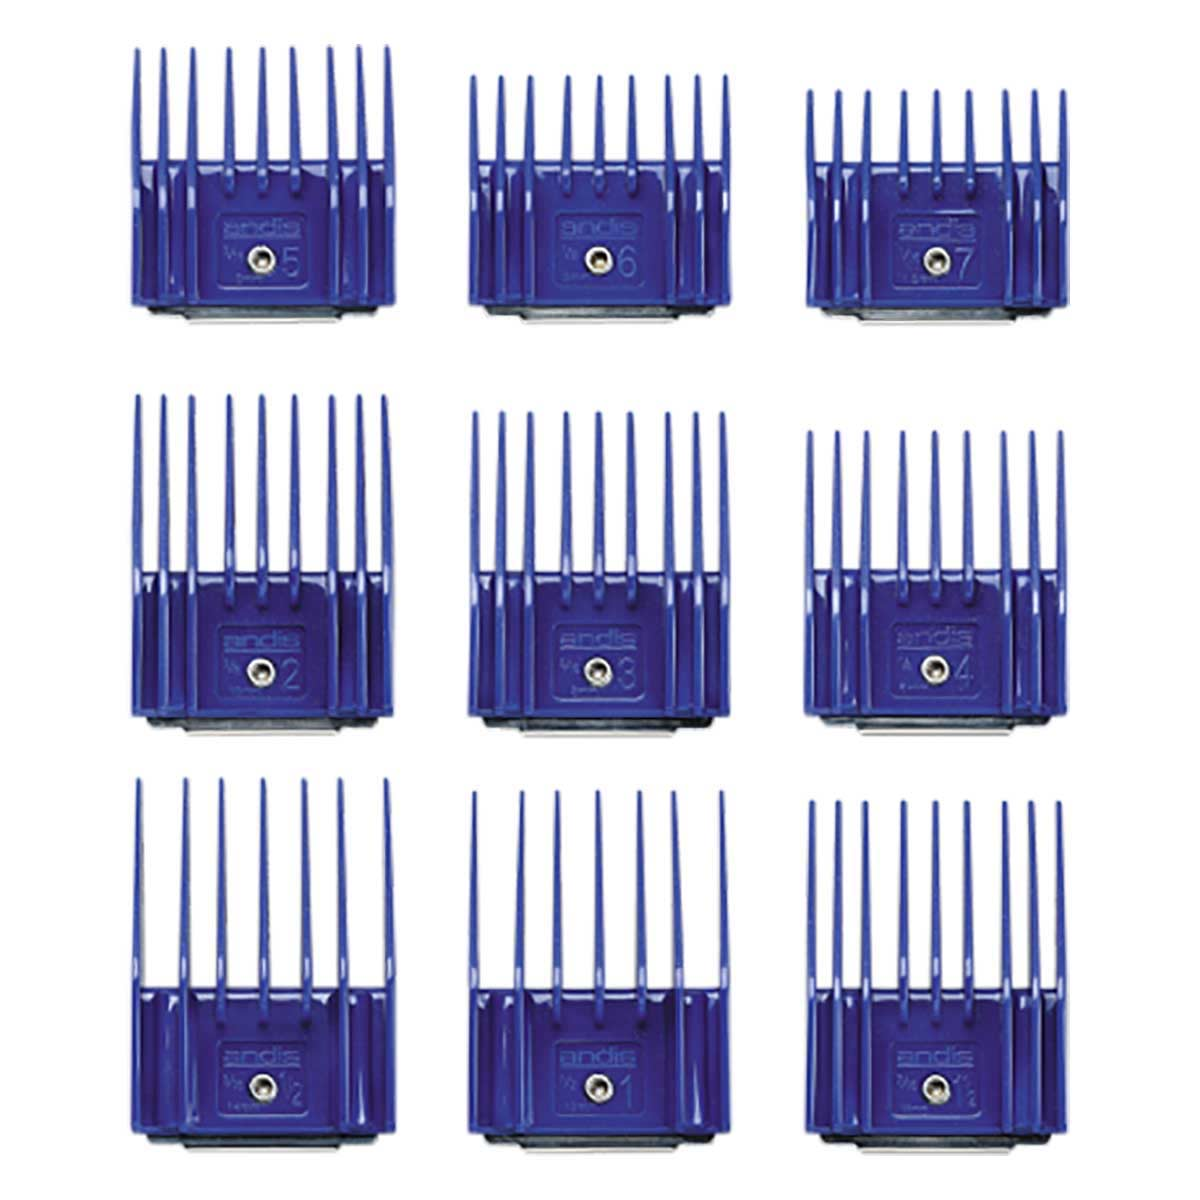 Buy Andis 9 Piece Snap-On Comb Set - Small at Ryan's Pet Supplies